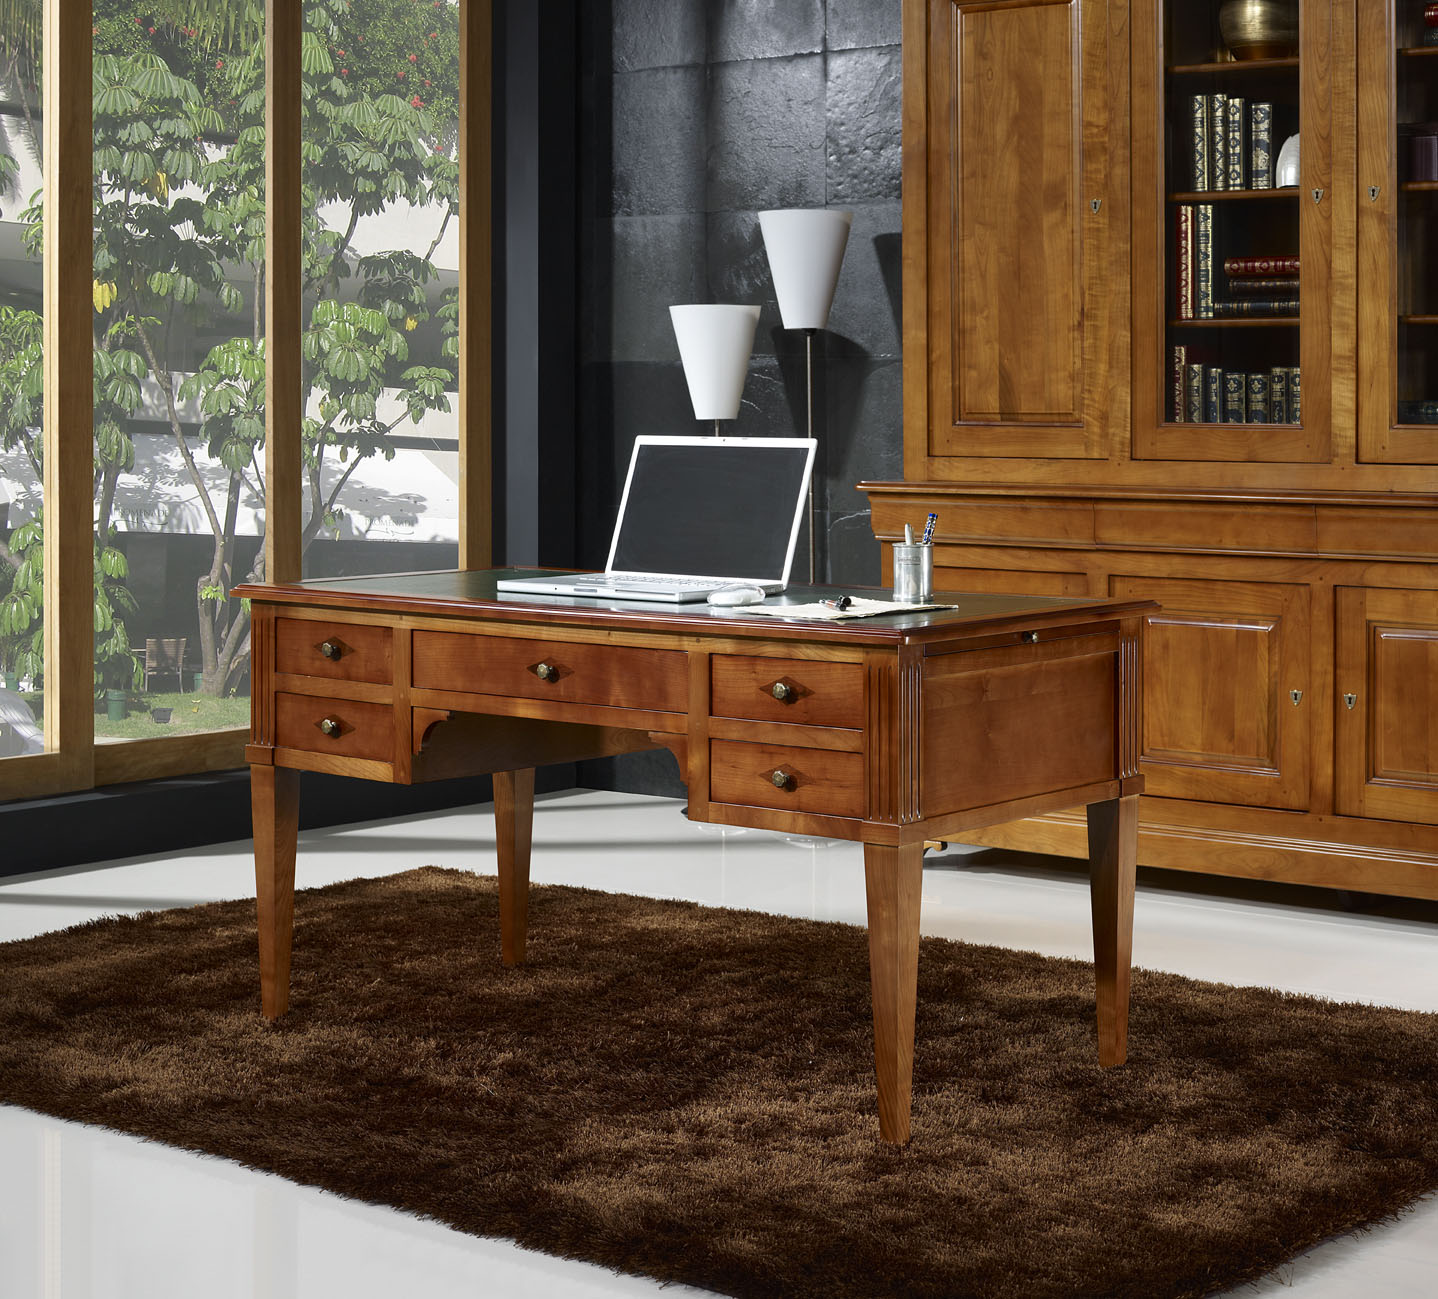 bureau ministre en merisier massif de style directoire meuble en merisier massif. Black Bedroom Furniture Sets. Home Design Ideas